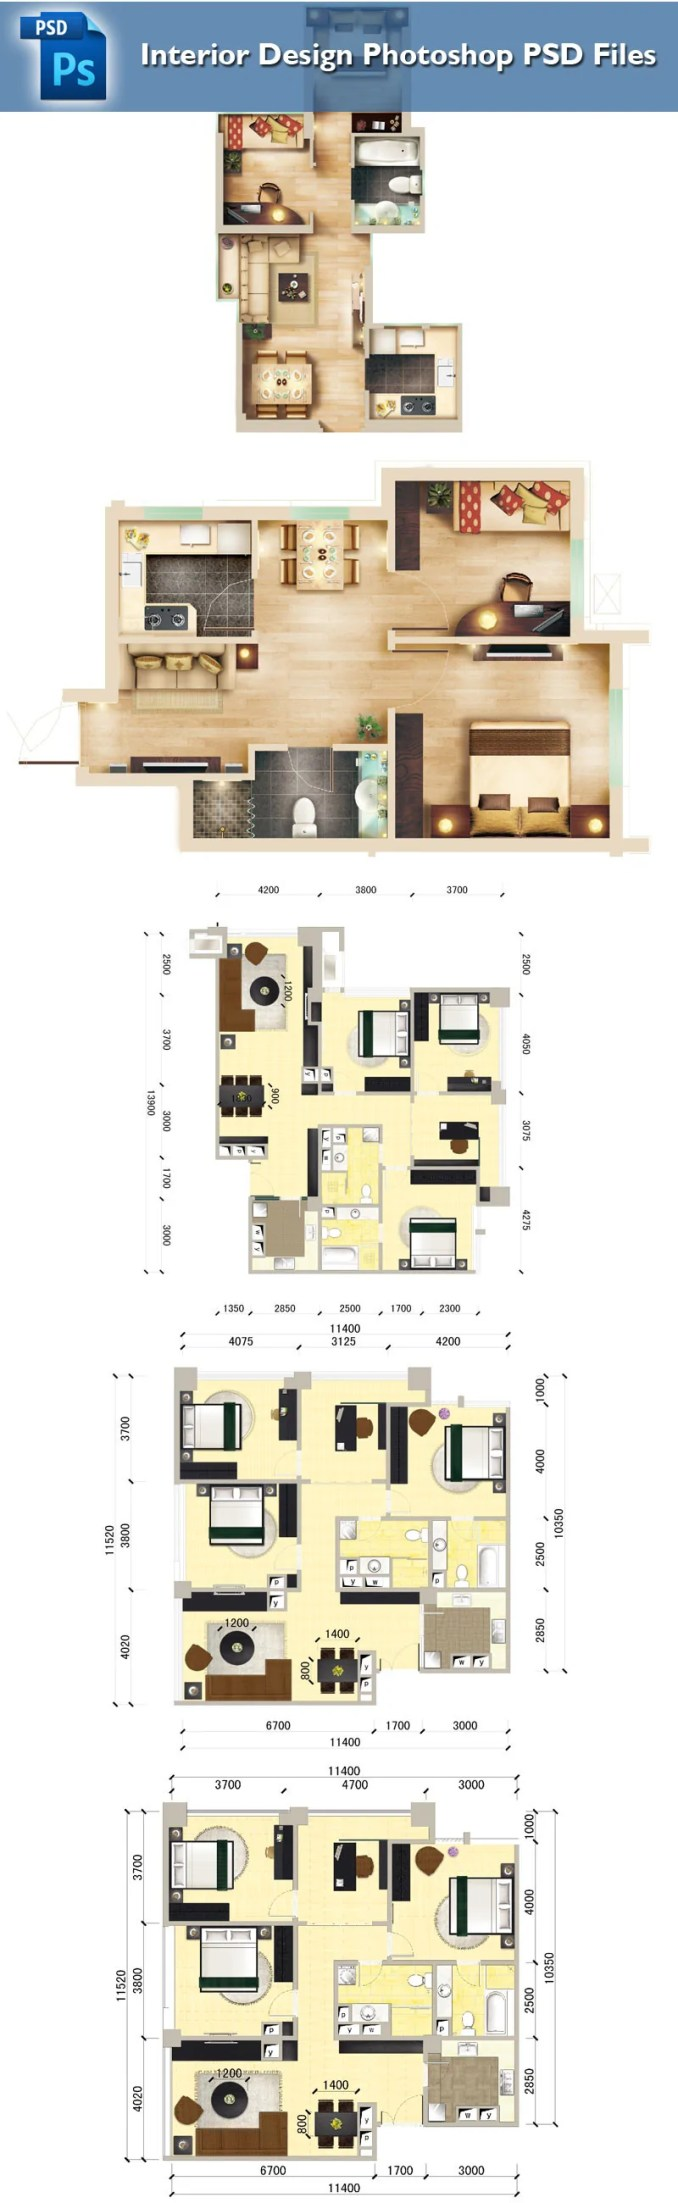 15 Types Of Interior Design Layouts Photoshop PSD Template V3